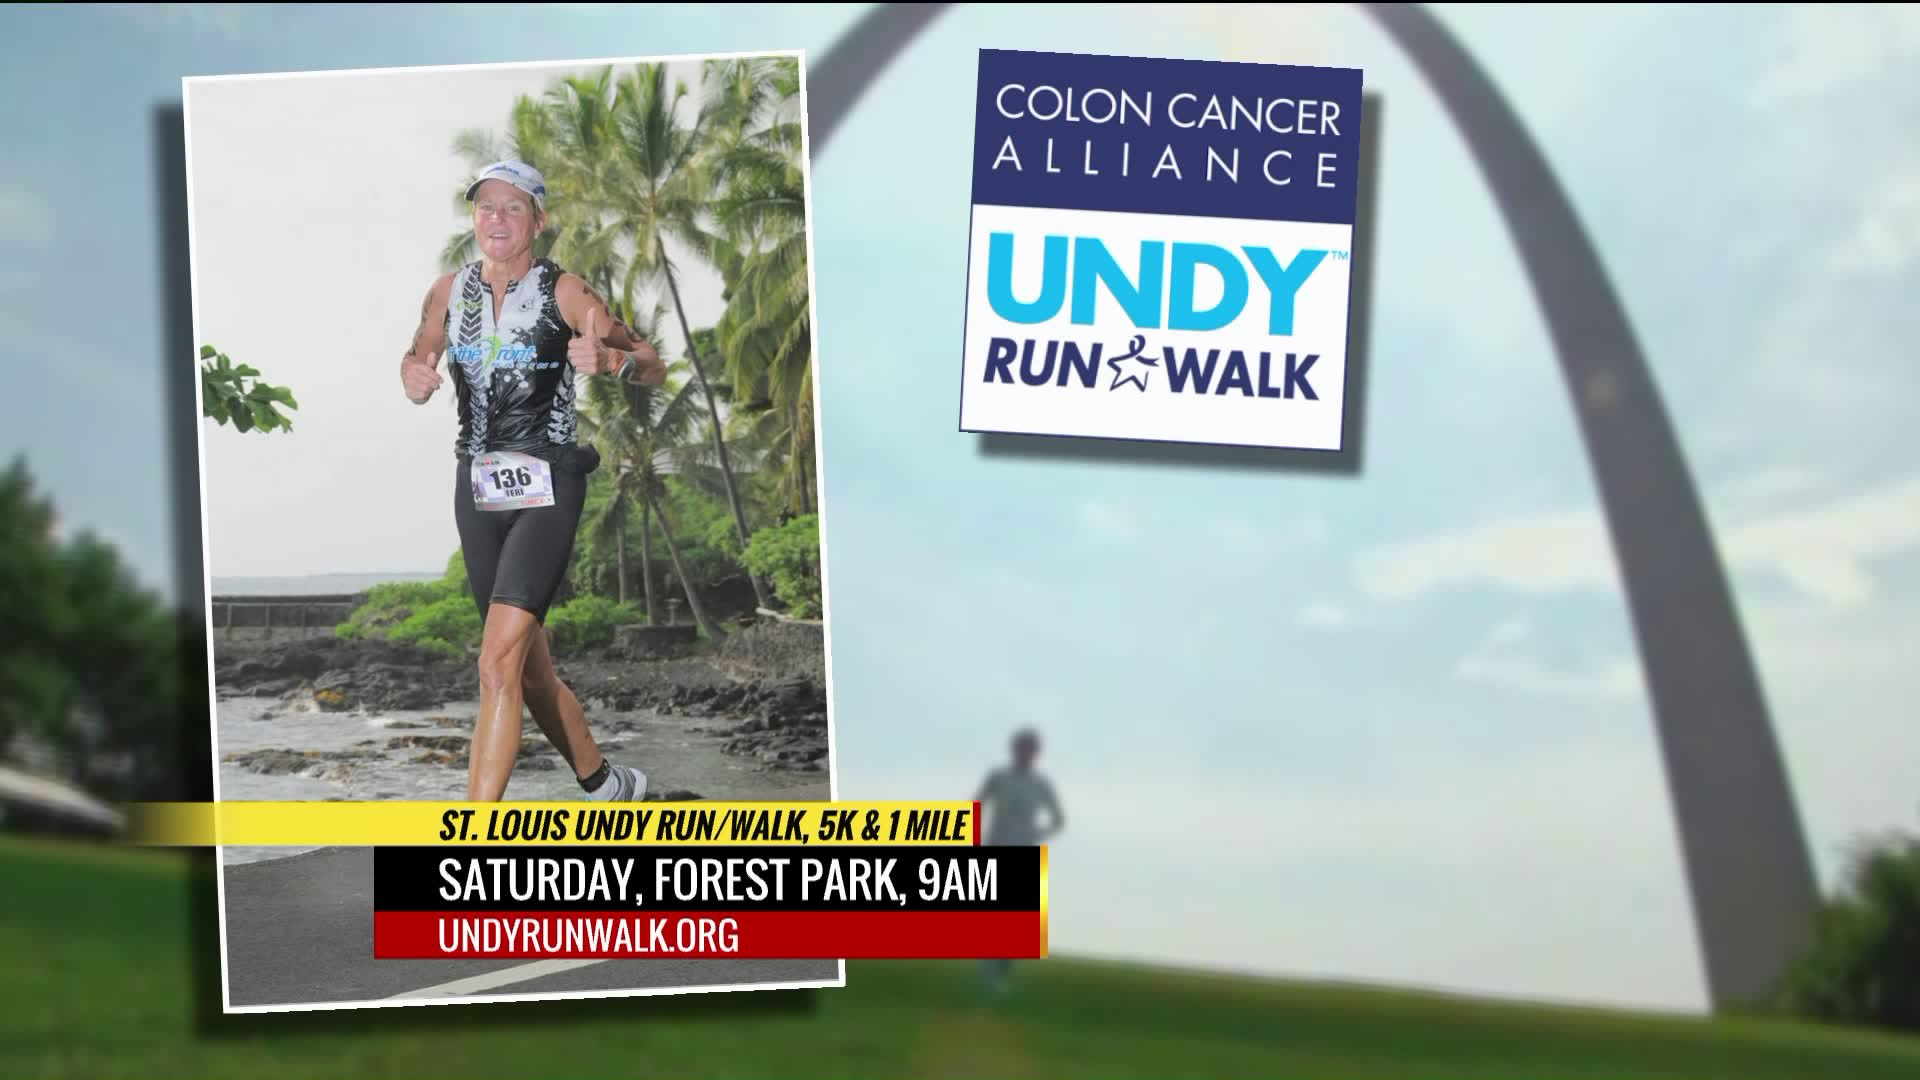 Colon Cancer Alliance To Host St Louis Undy Run Walk March 25 Fox 2